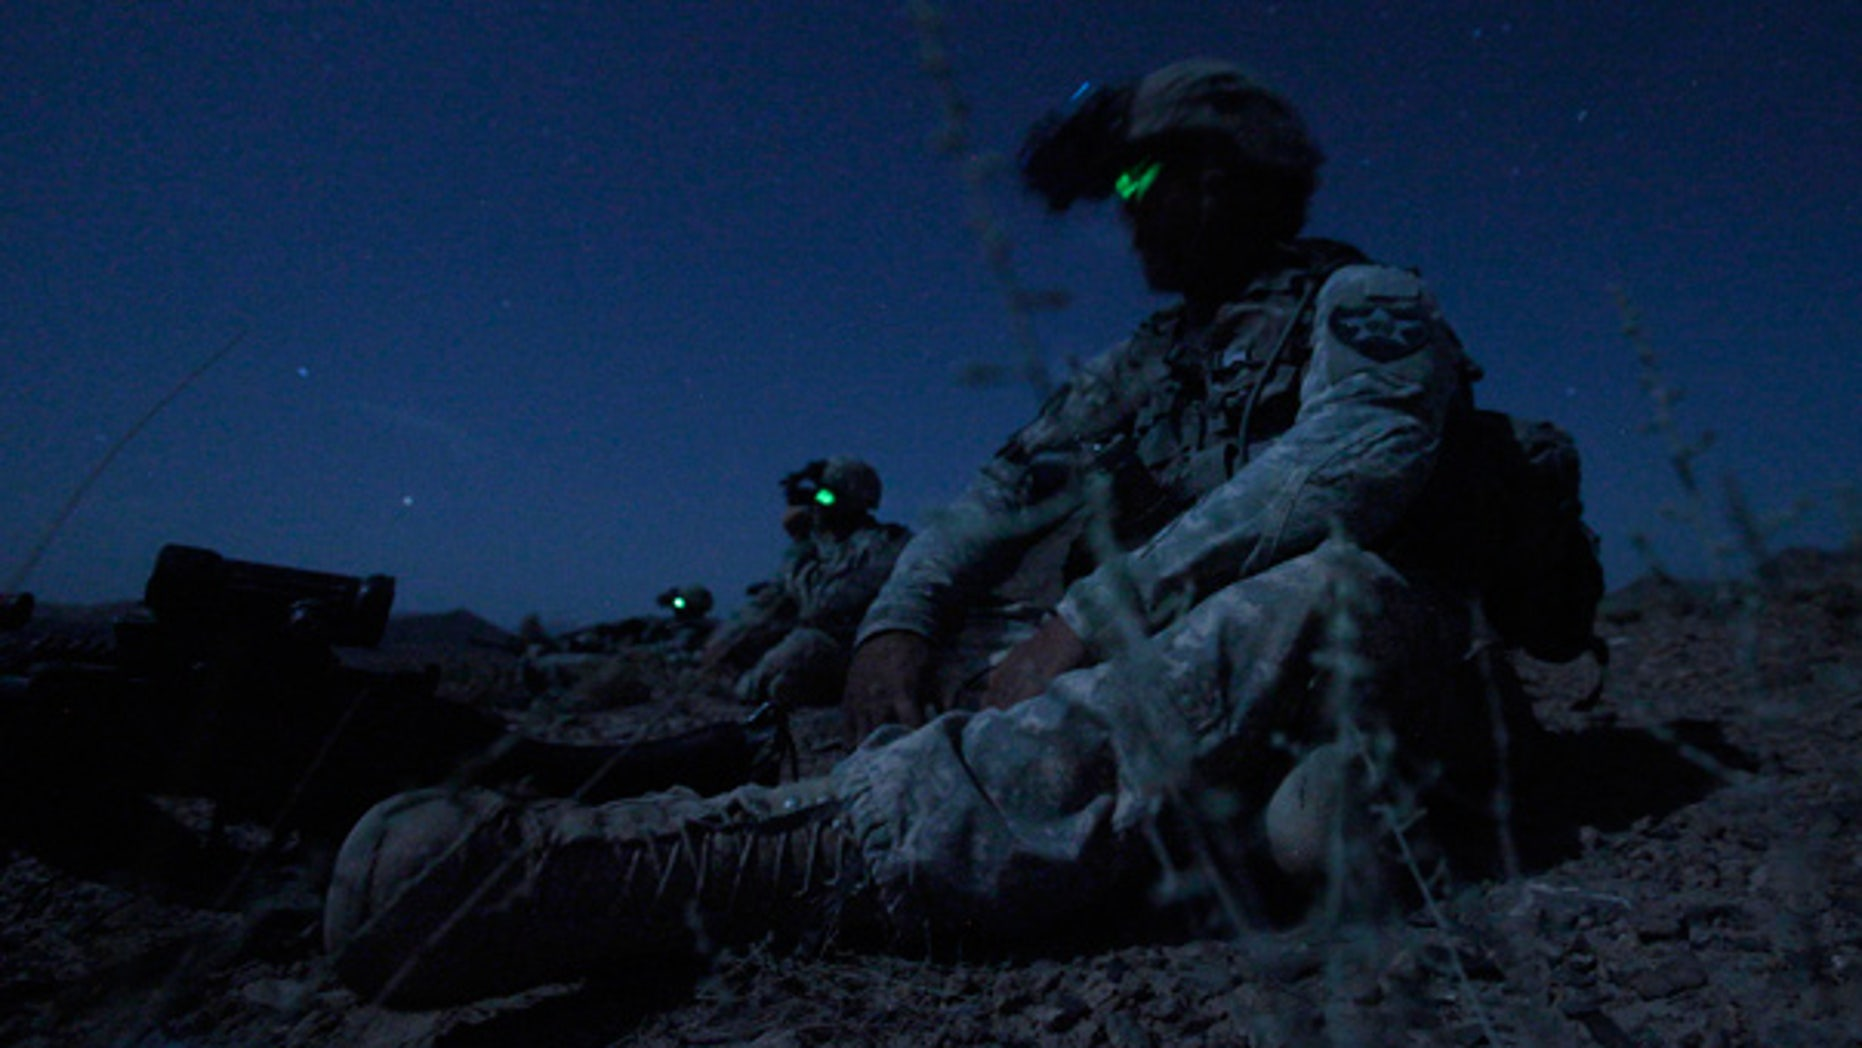 May 21: U.S. forces sit in the darkness during an ambush on Taliban fighters in Afghanistan's Kandahar province.